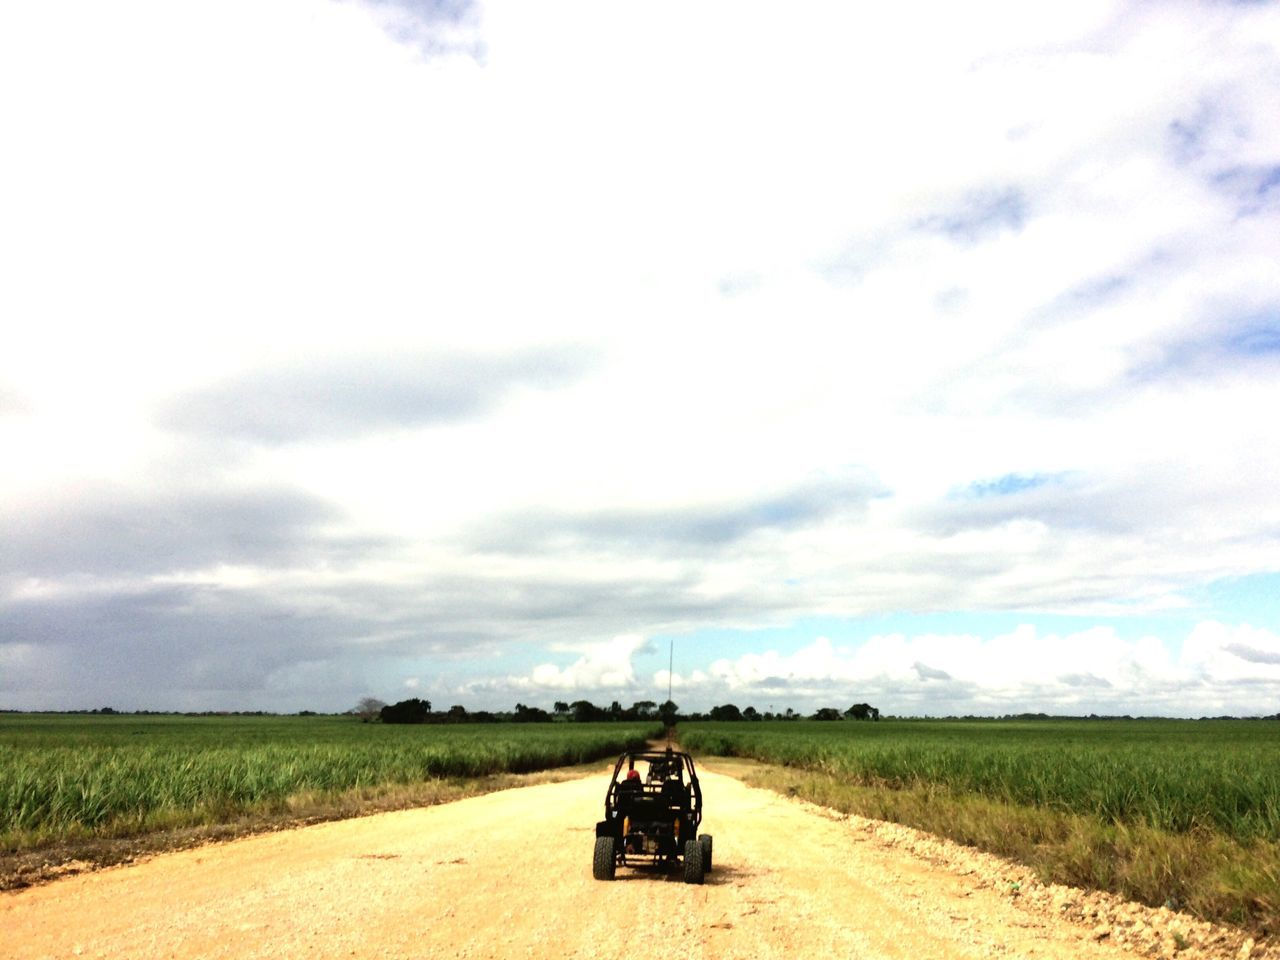 Car On Dirt Road By Agricultural Field Against Sky